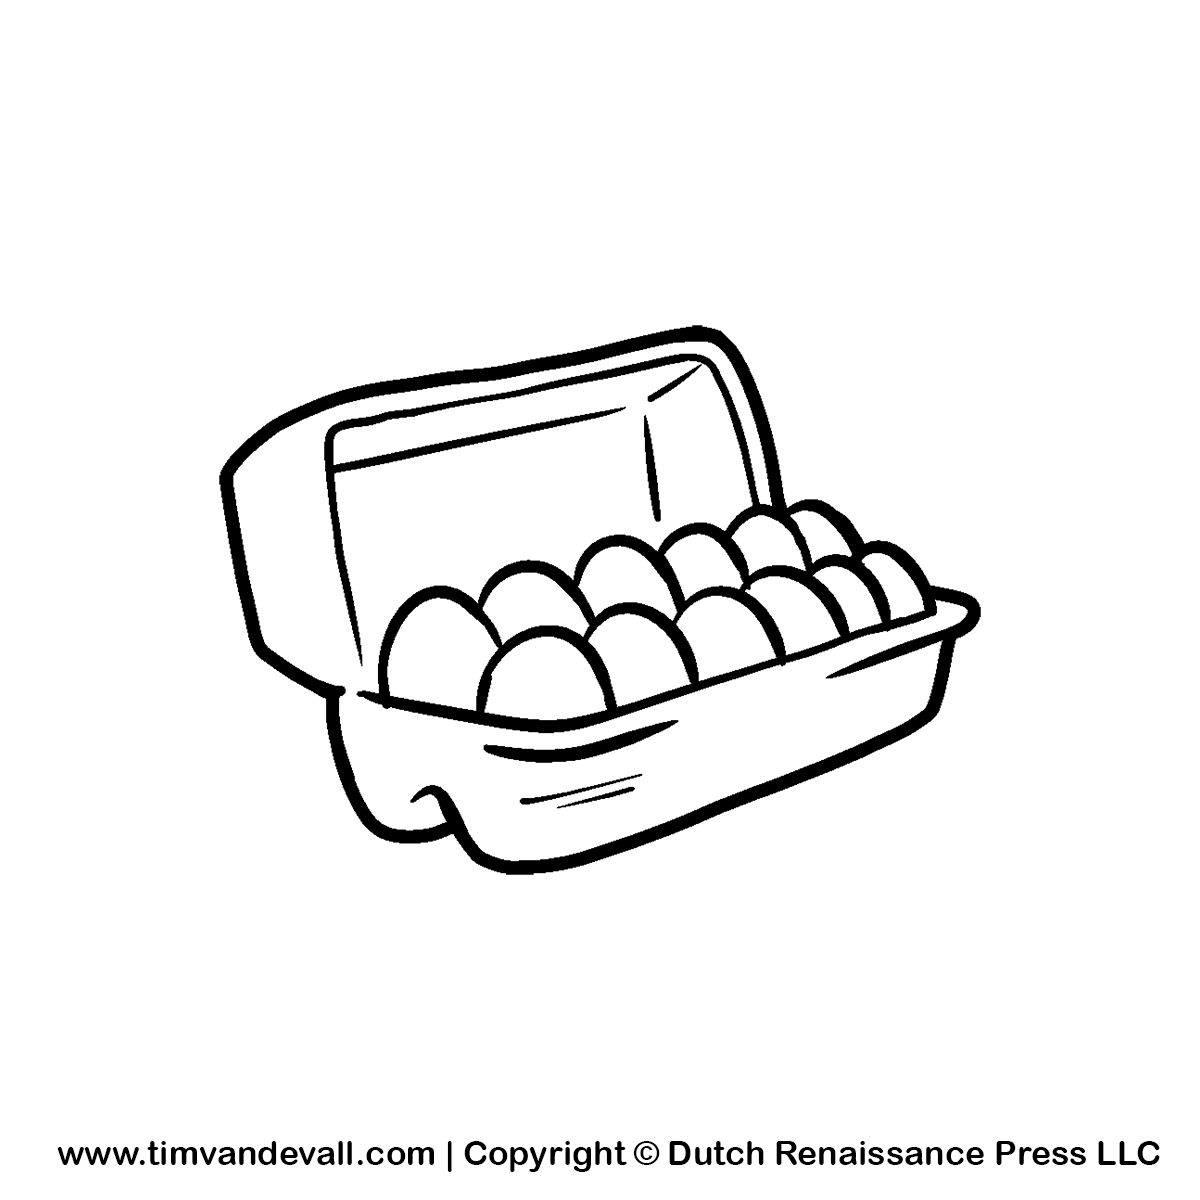 Yolk Clipart Black And White Van Clipart Black And White Eggs Bw